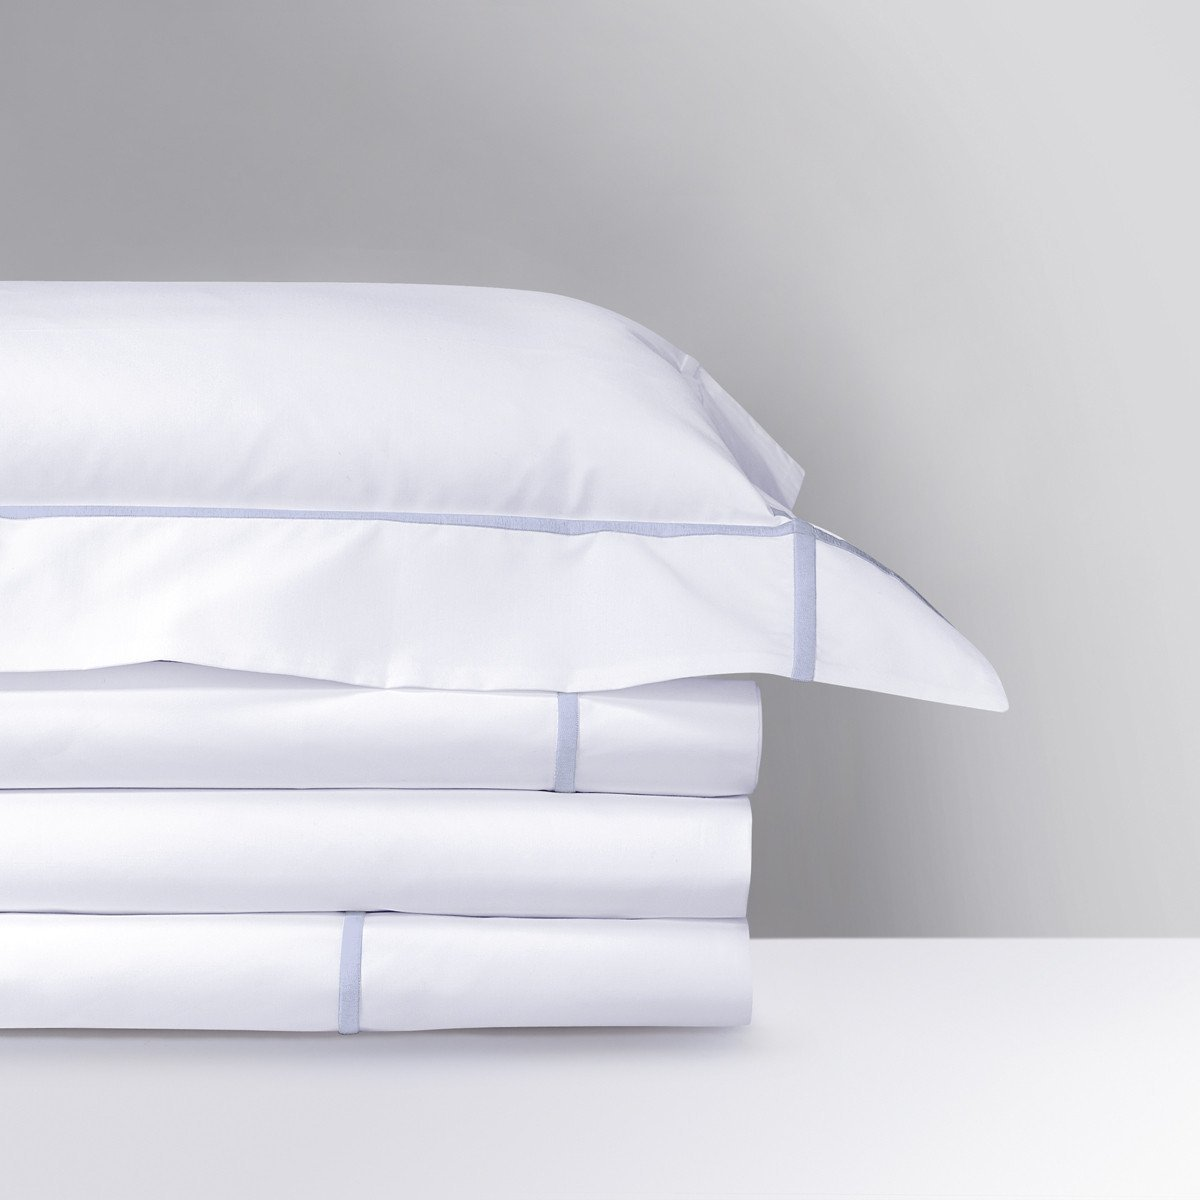 Athena Opalia Bedding Collection by Yves Delorme | Fig Linens - white sheets, shams, pillowcase